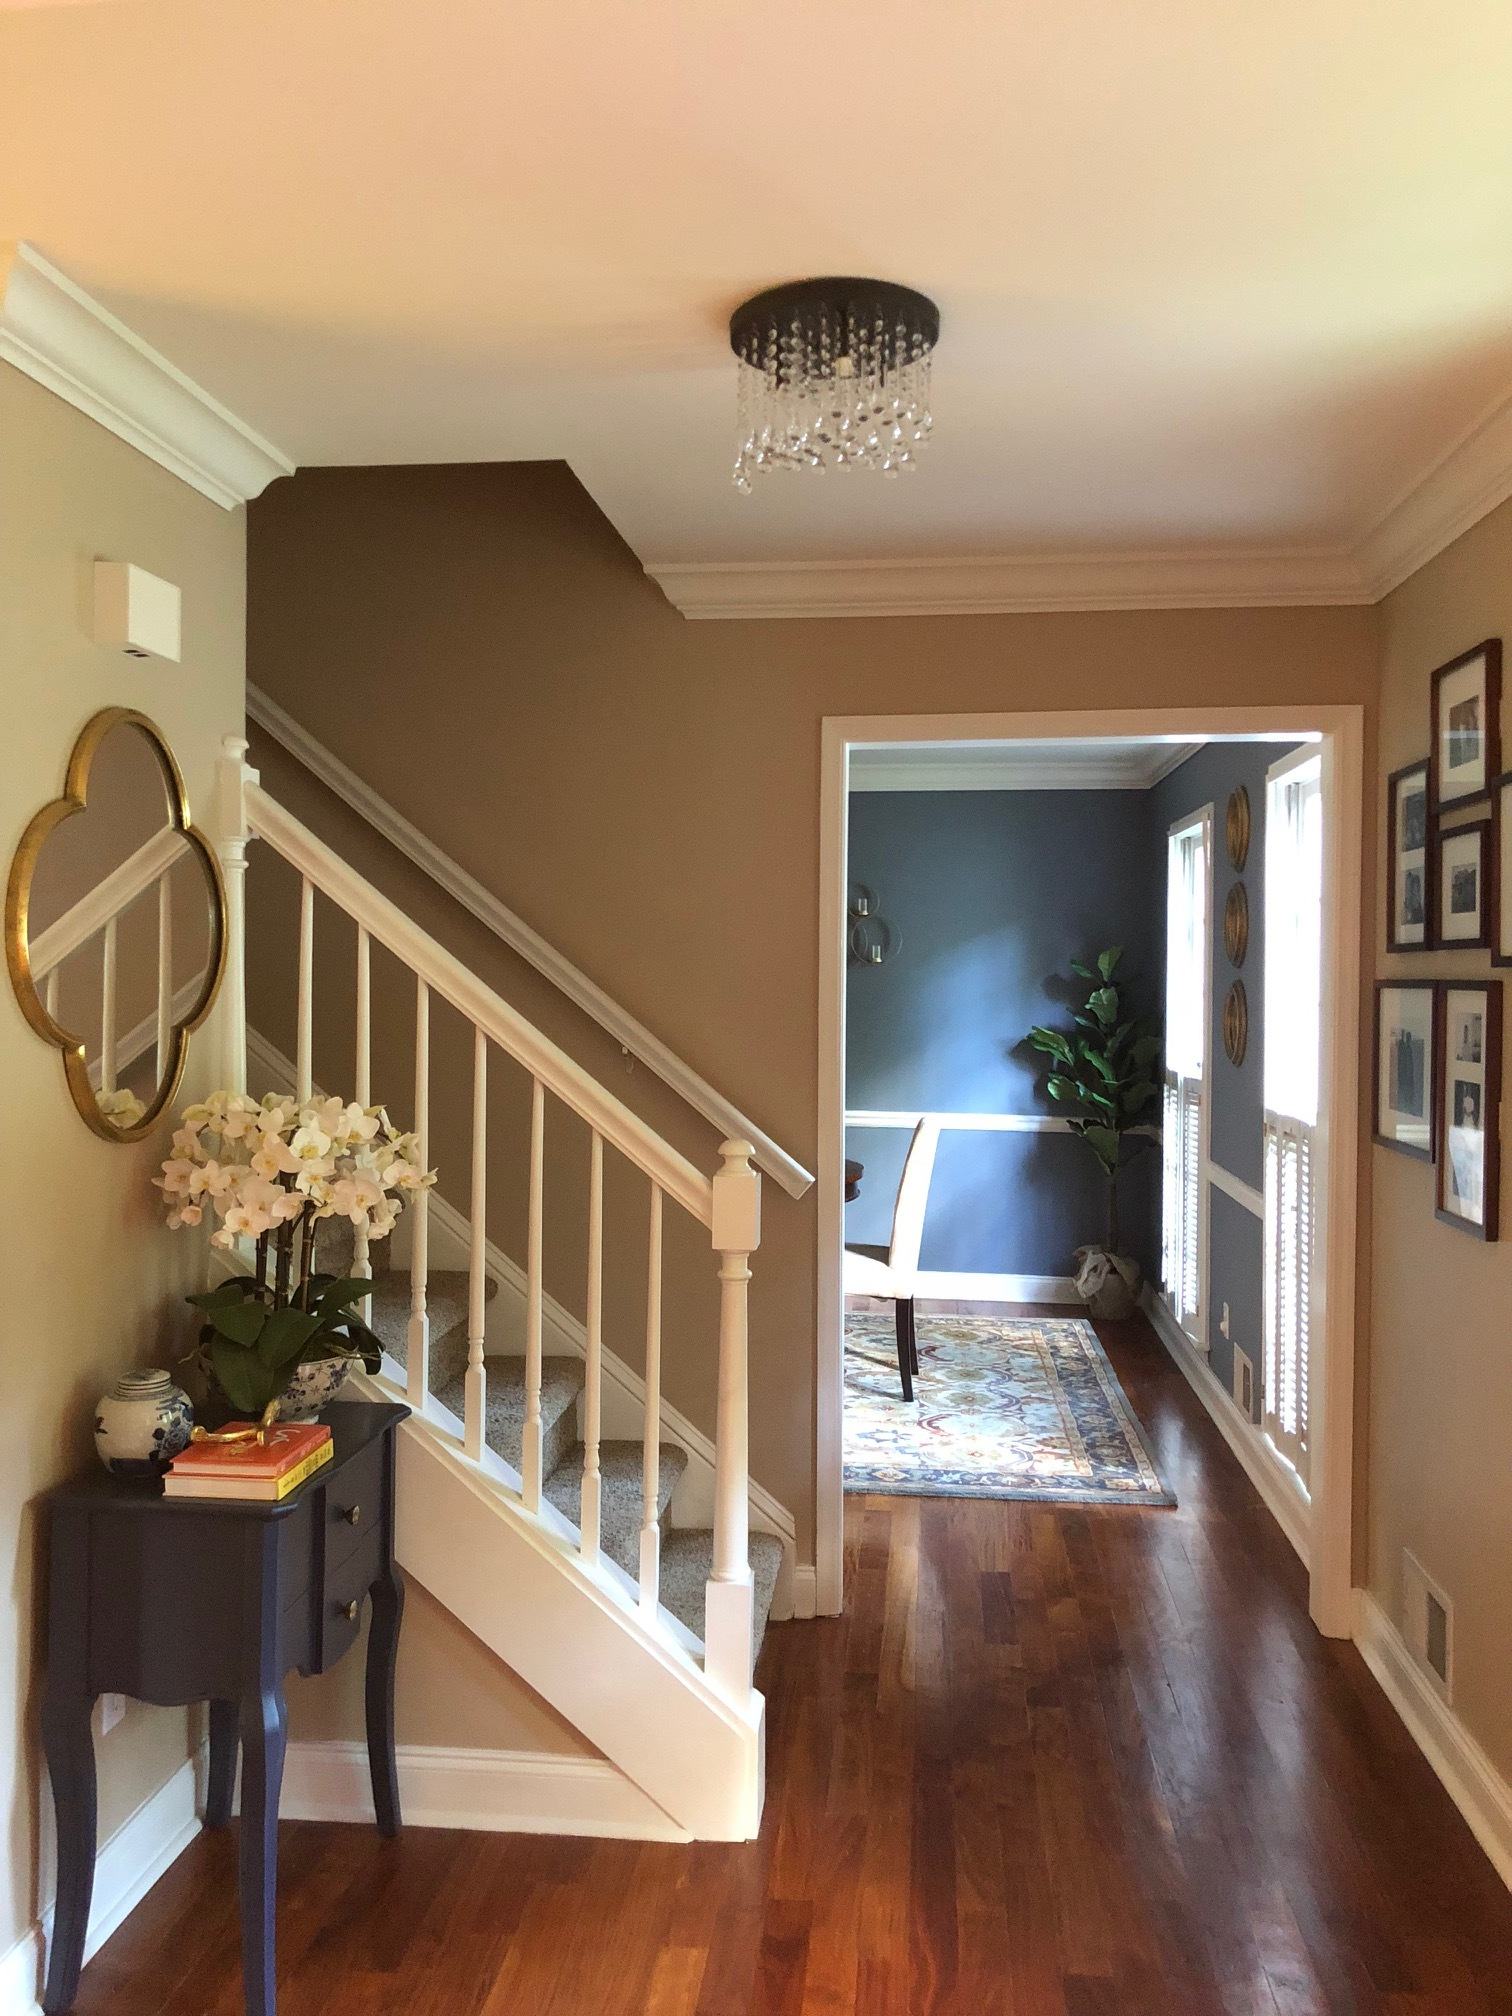 Flush Mount Lights For A Small Entryway